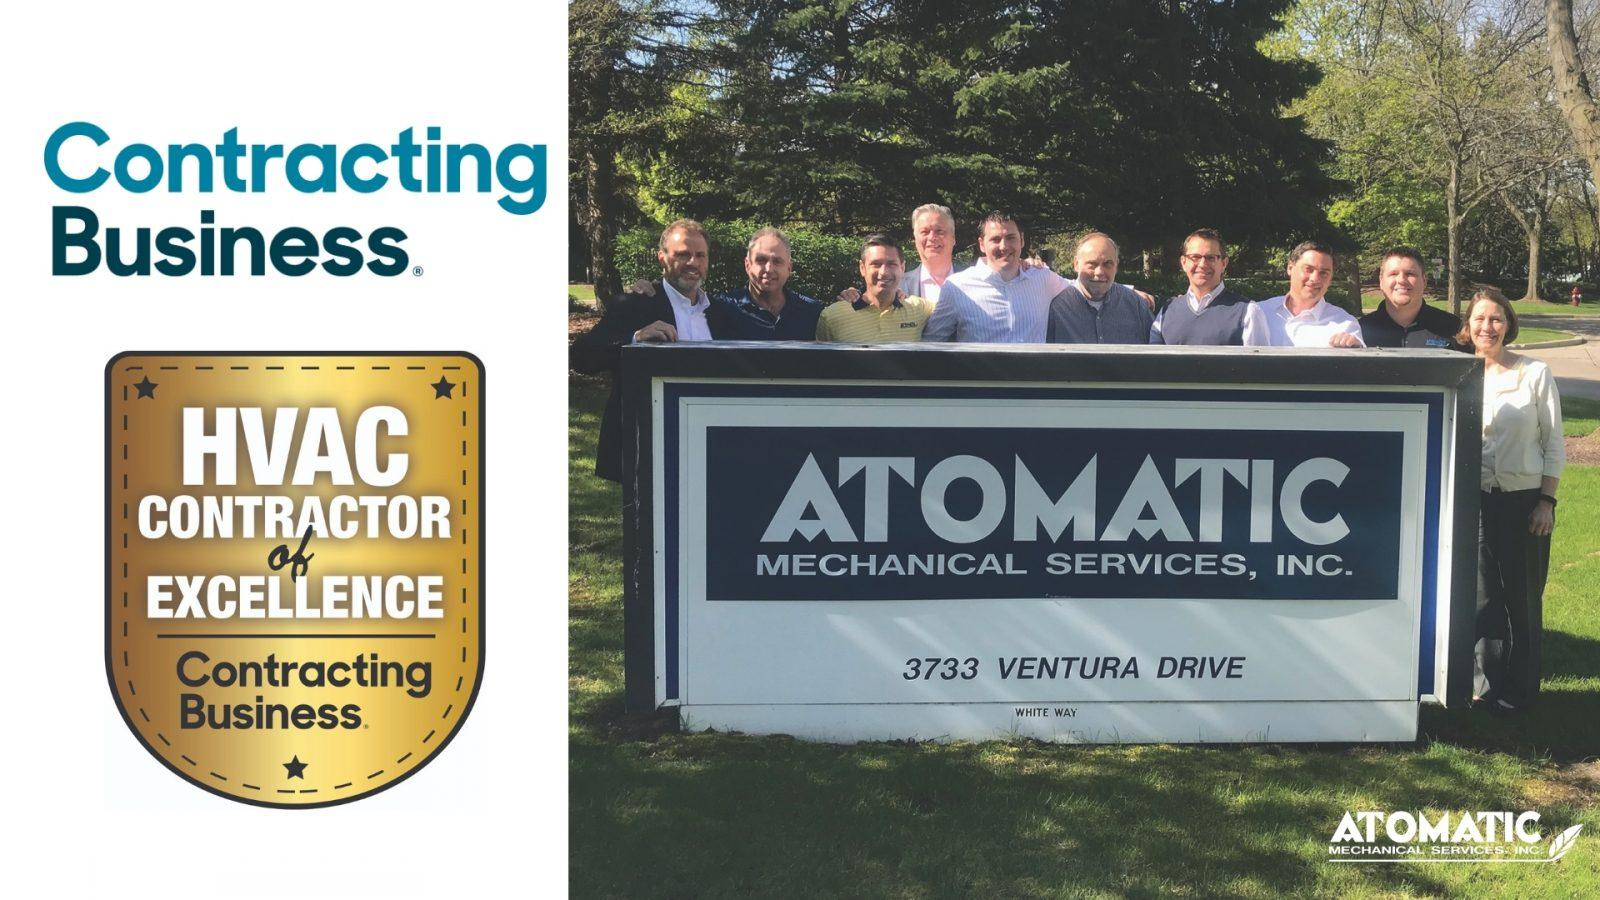 Commercial HVAC Contractor of Excellence: Atomatic Mechanical Services